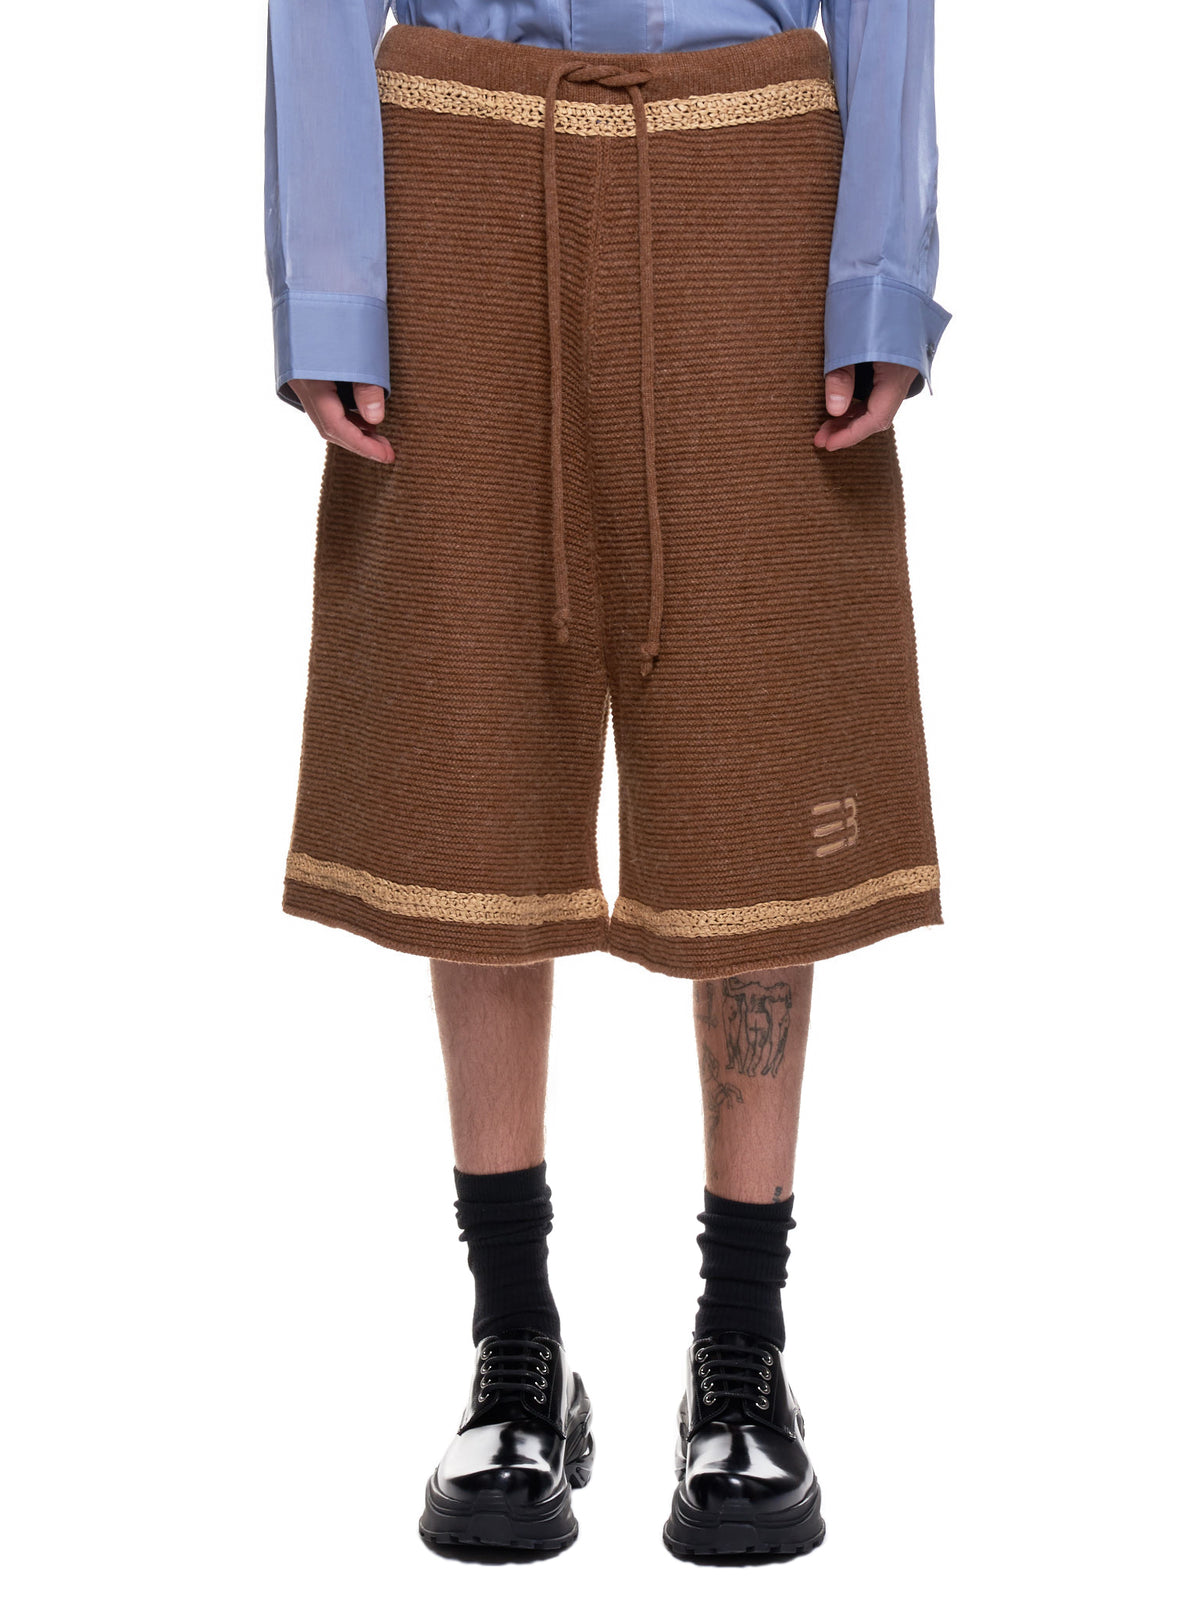 Tobi Heavy Knitted Shorts (KN-04-ST-SAND-TAN)